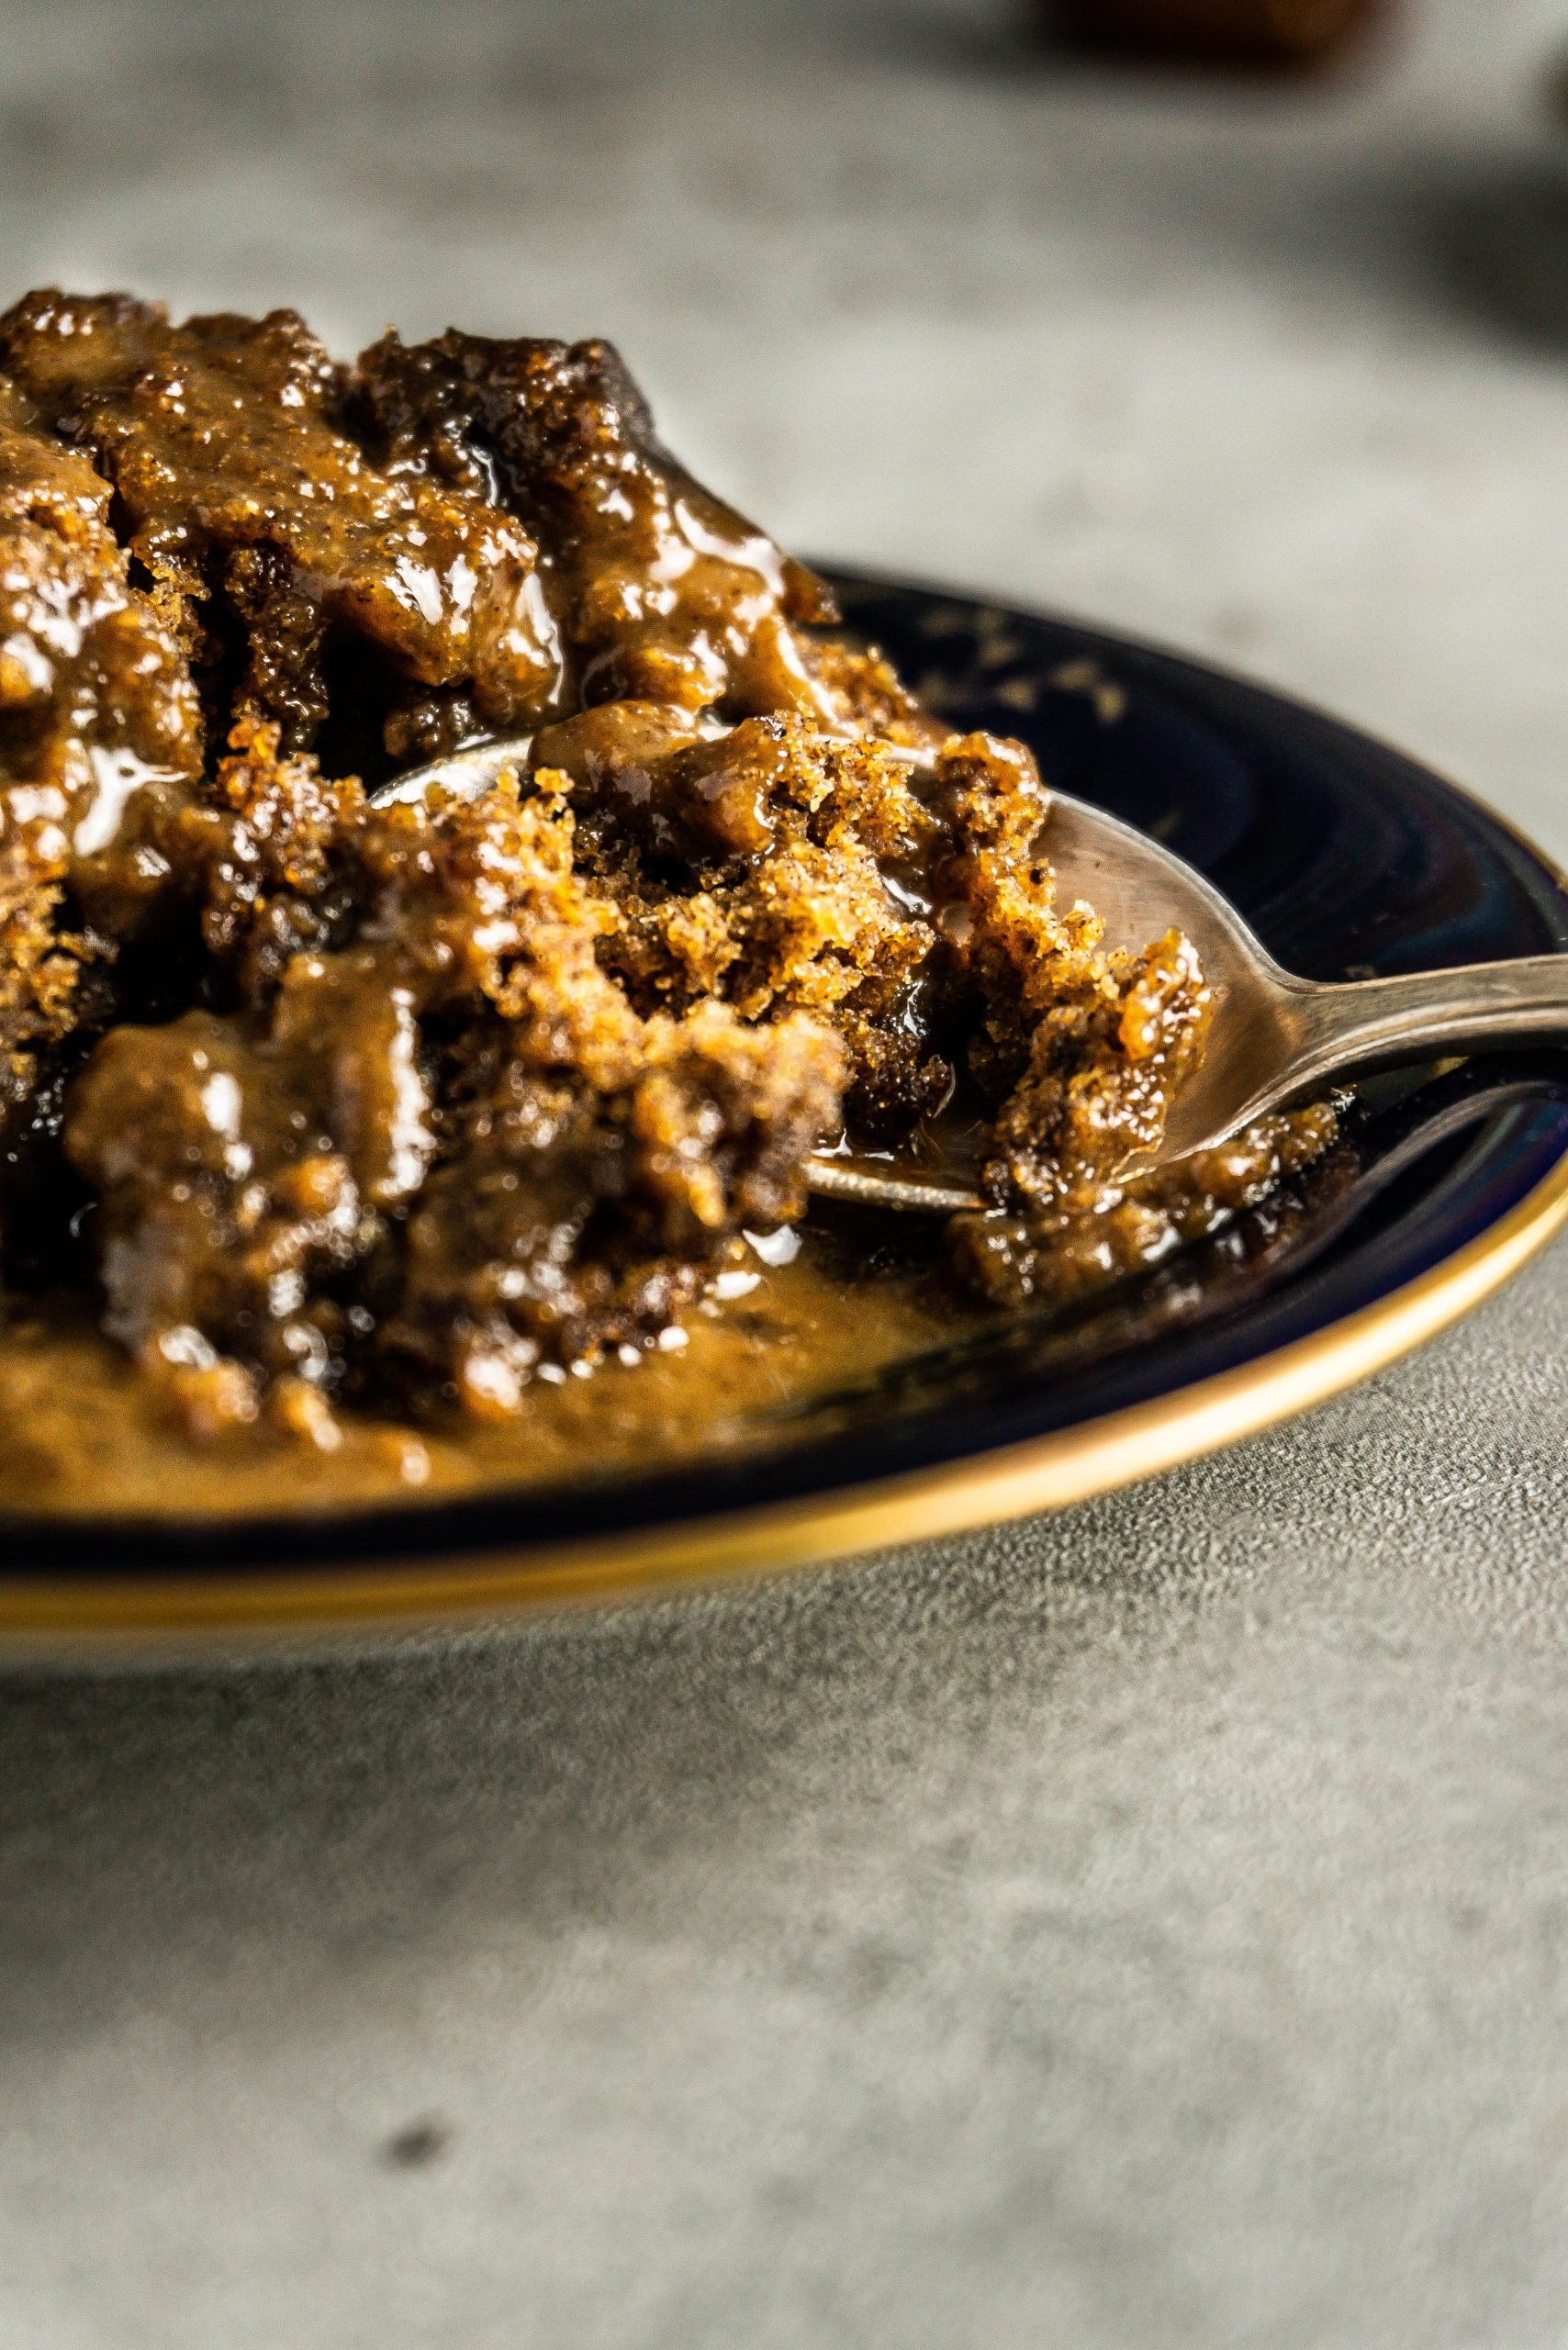 Vegan Hot Sticky Toffee Pudding covered in sauce tugged in with a spoon photographed up close